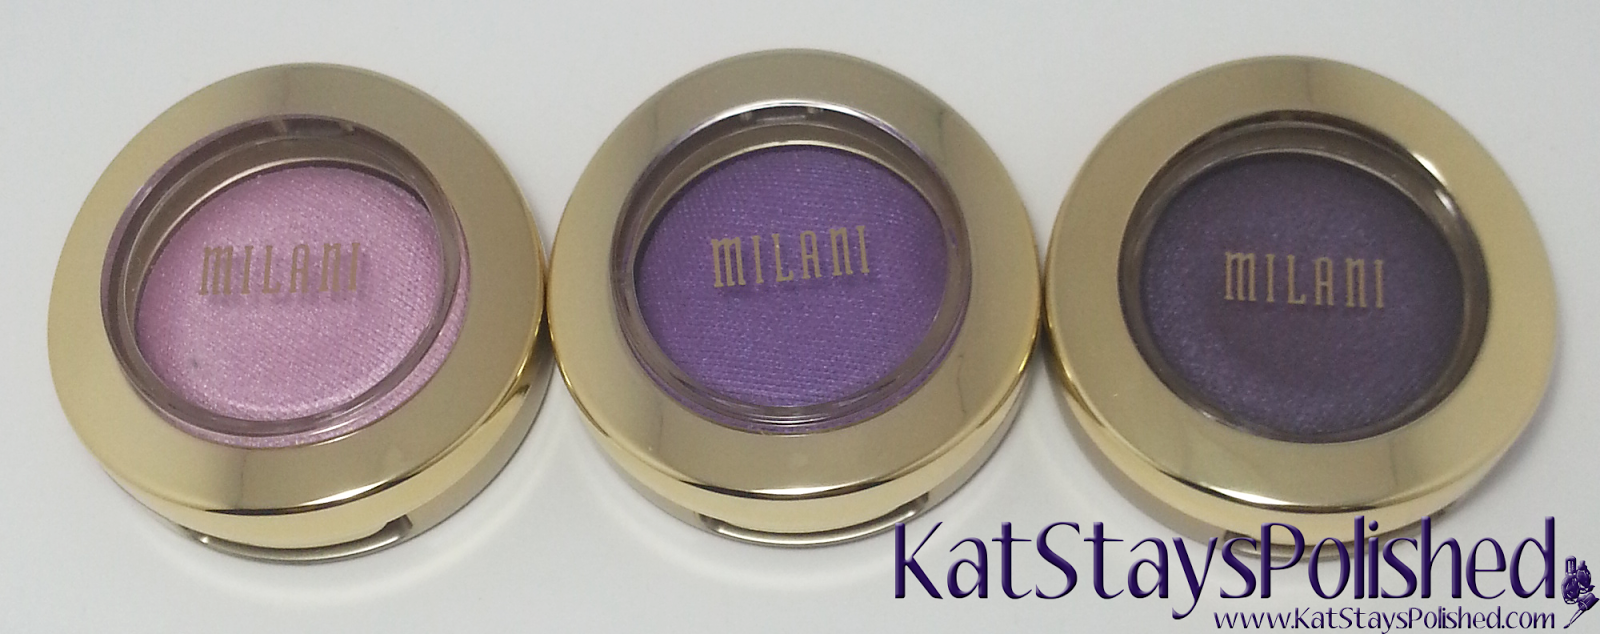 Milani Bella Eyes Gel Powder Eye Shadow - Pink - Violet - Purple | Kat Stays Polished